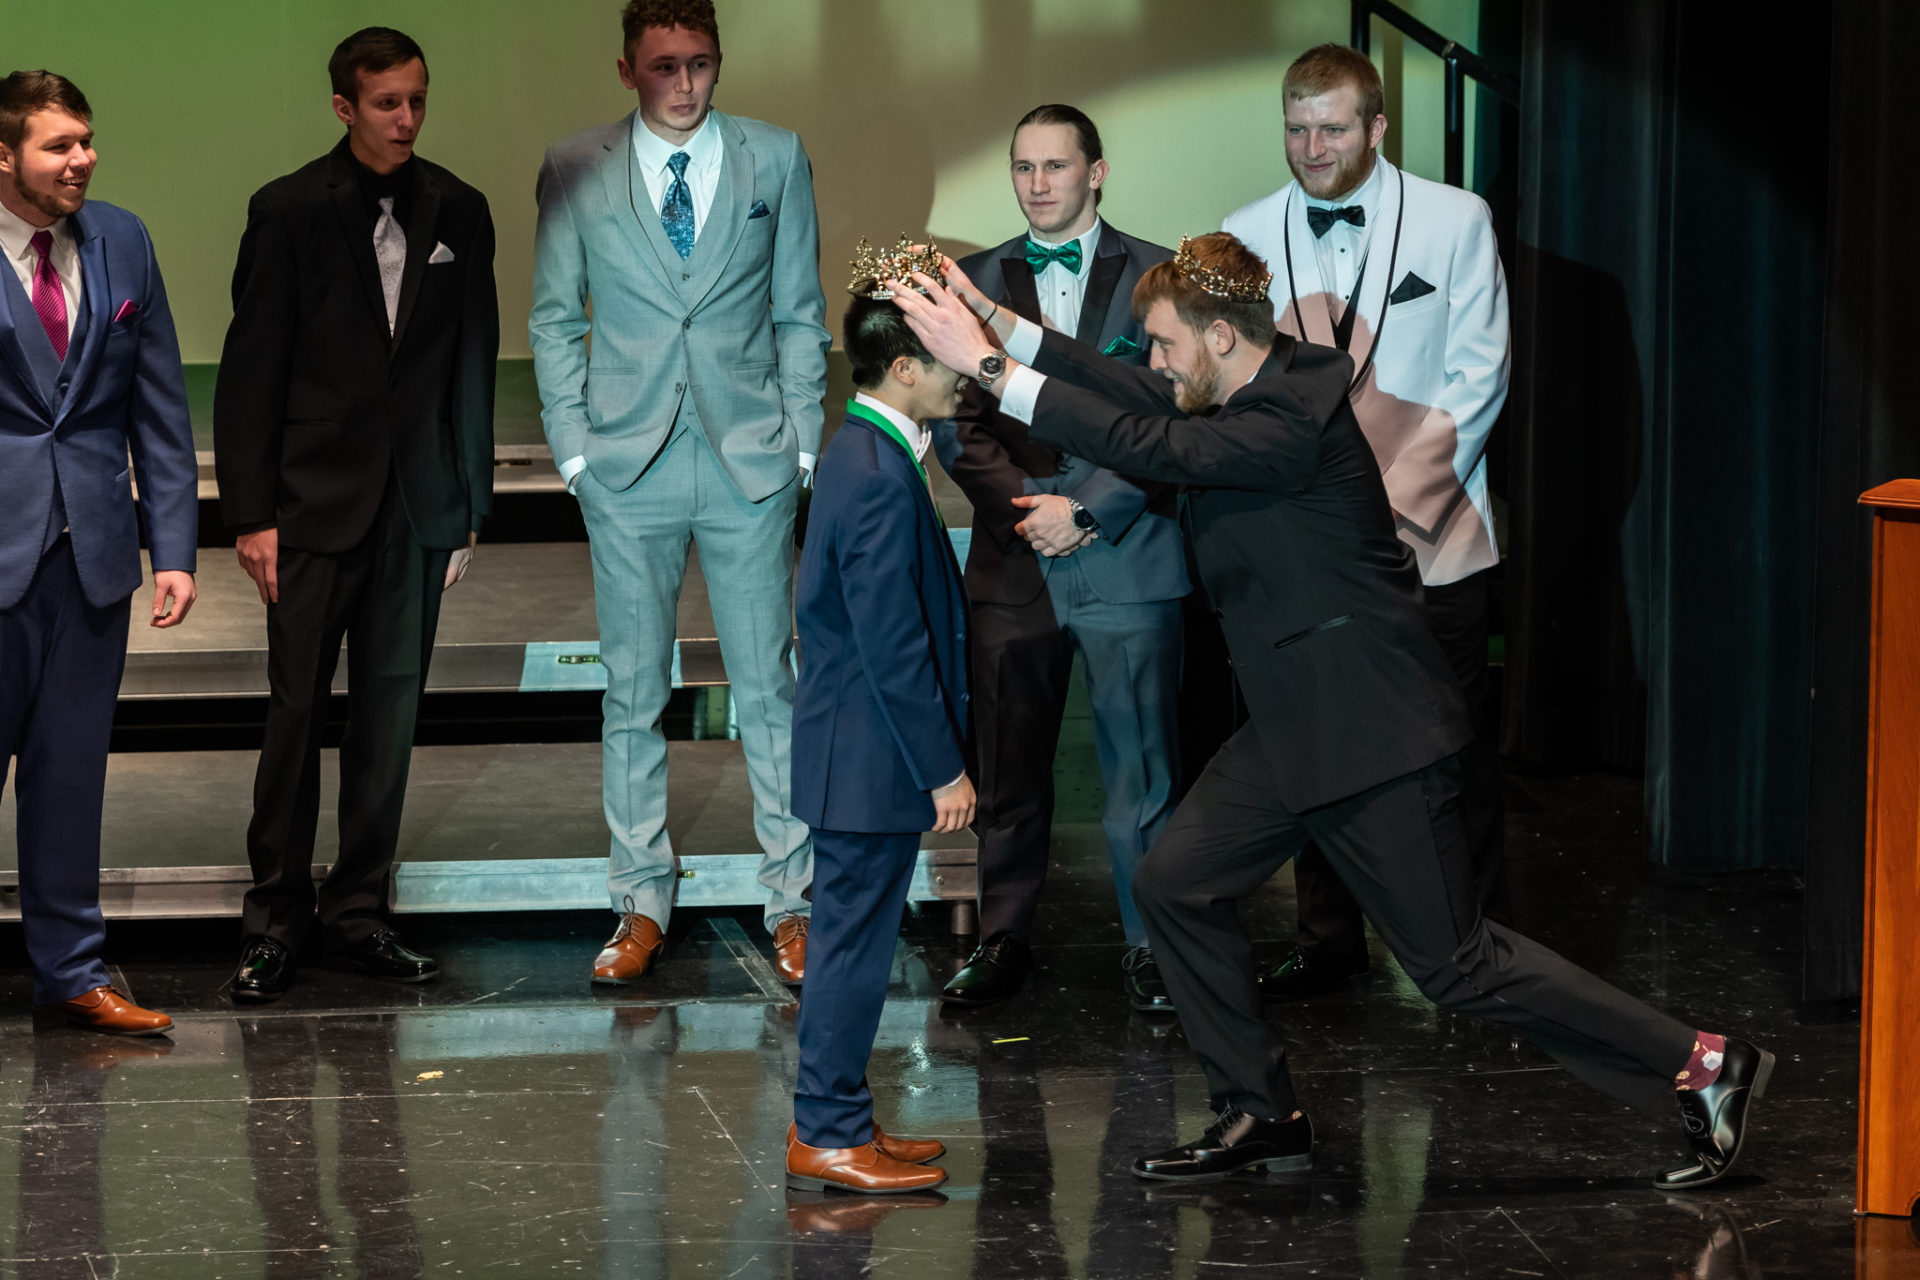 Freshman receives Mr. John Wood crown